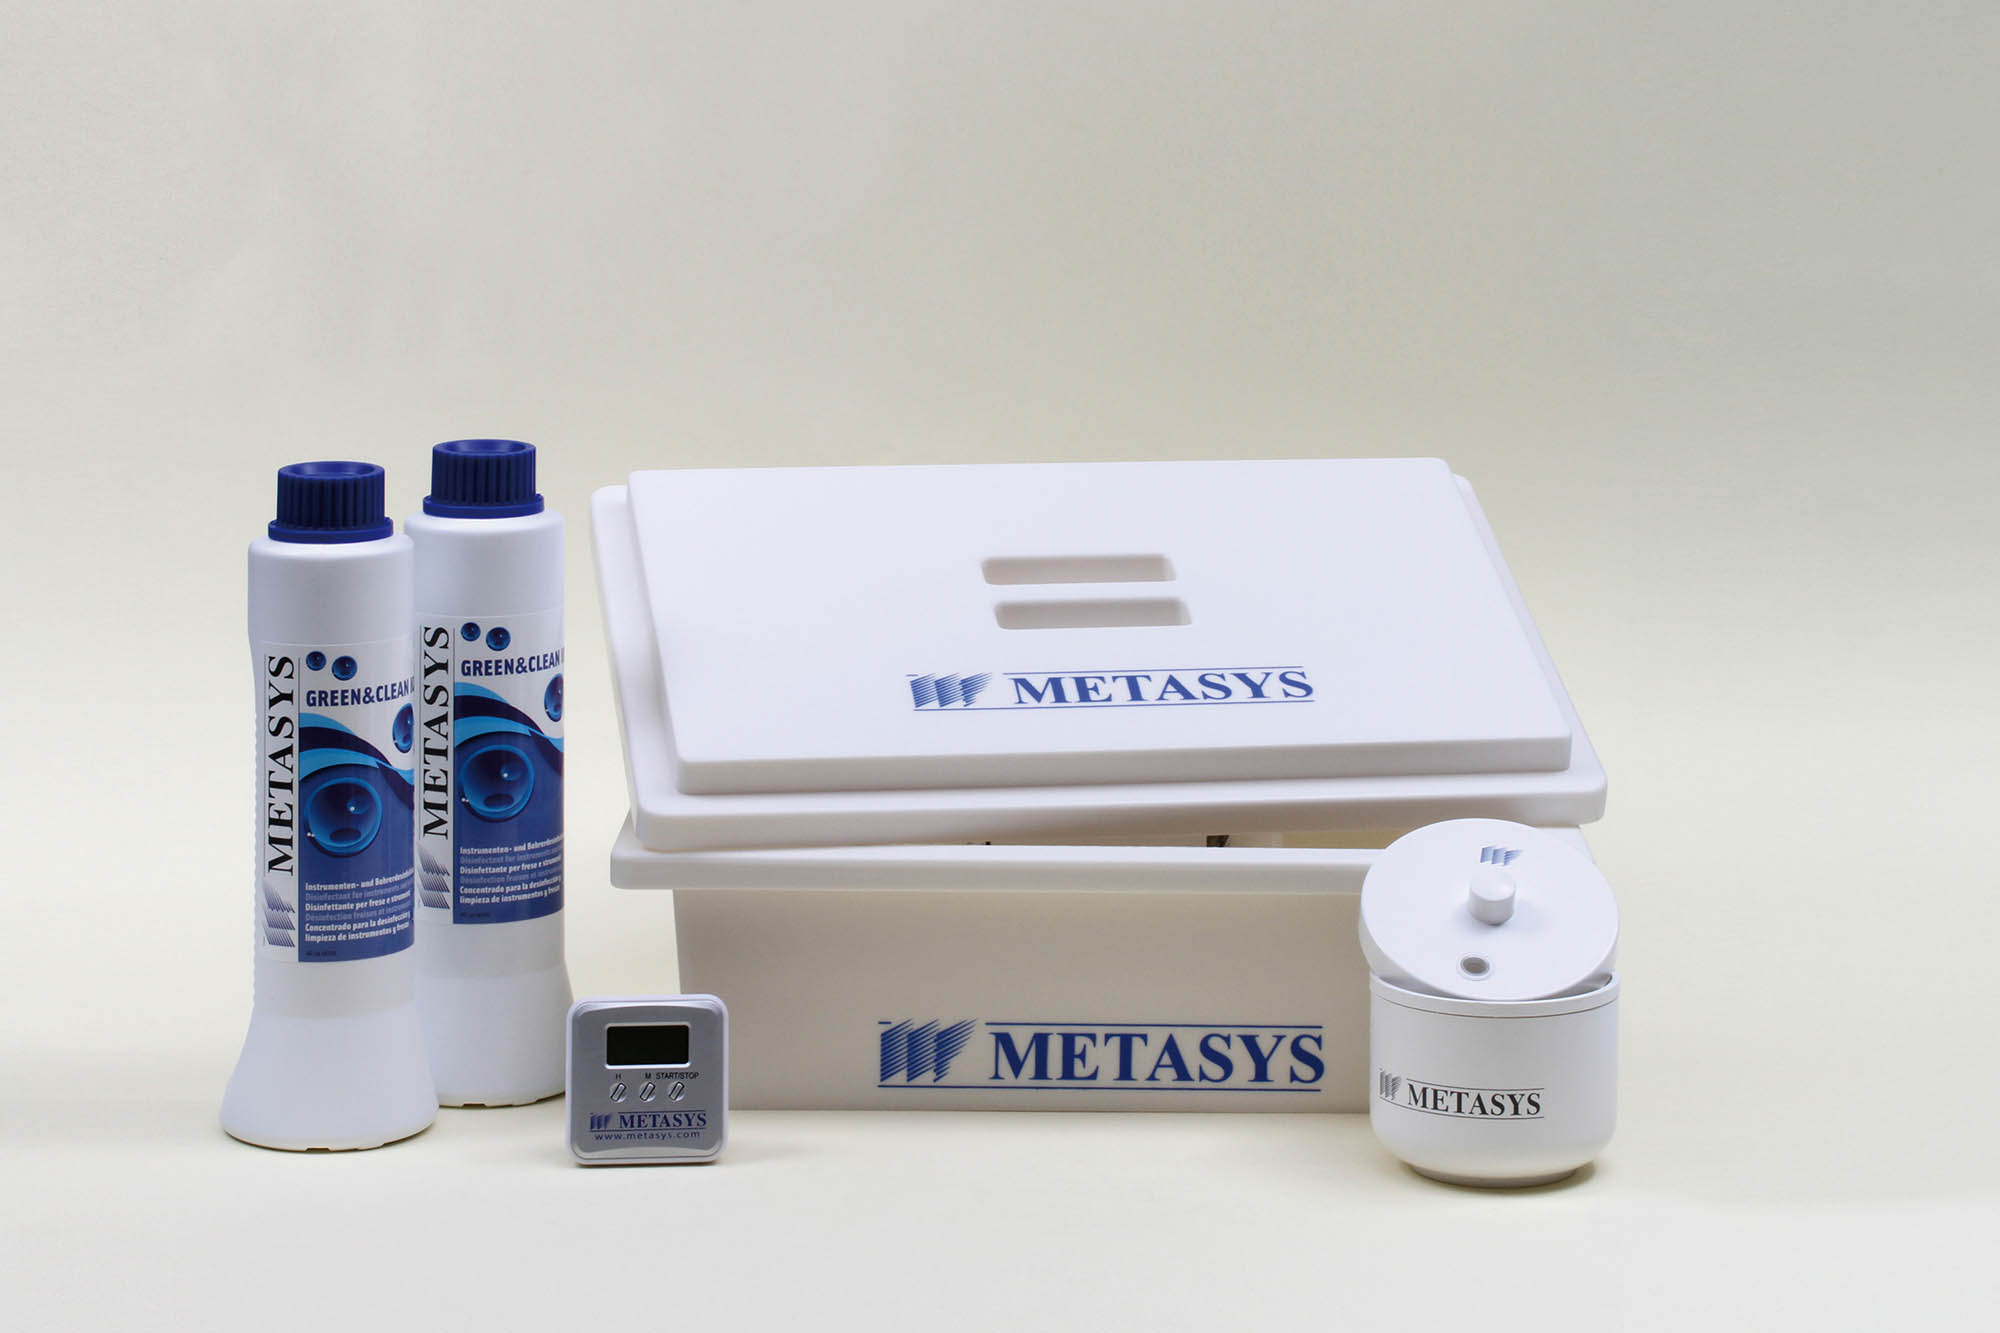 Metasys instruments GREEN & CLEAN ID N